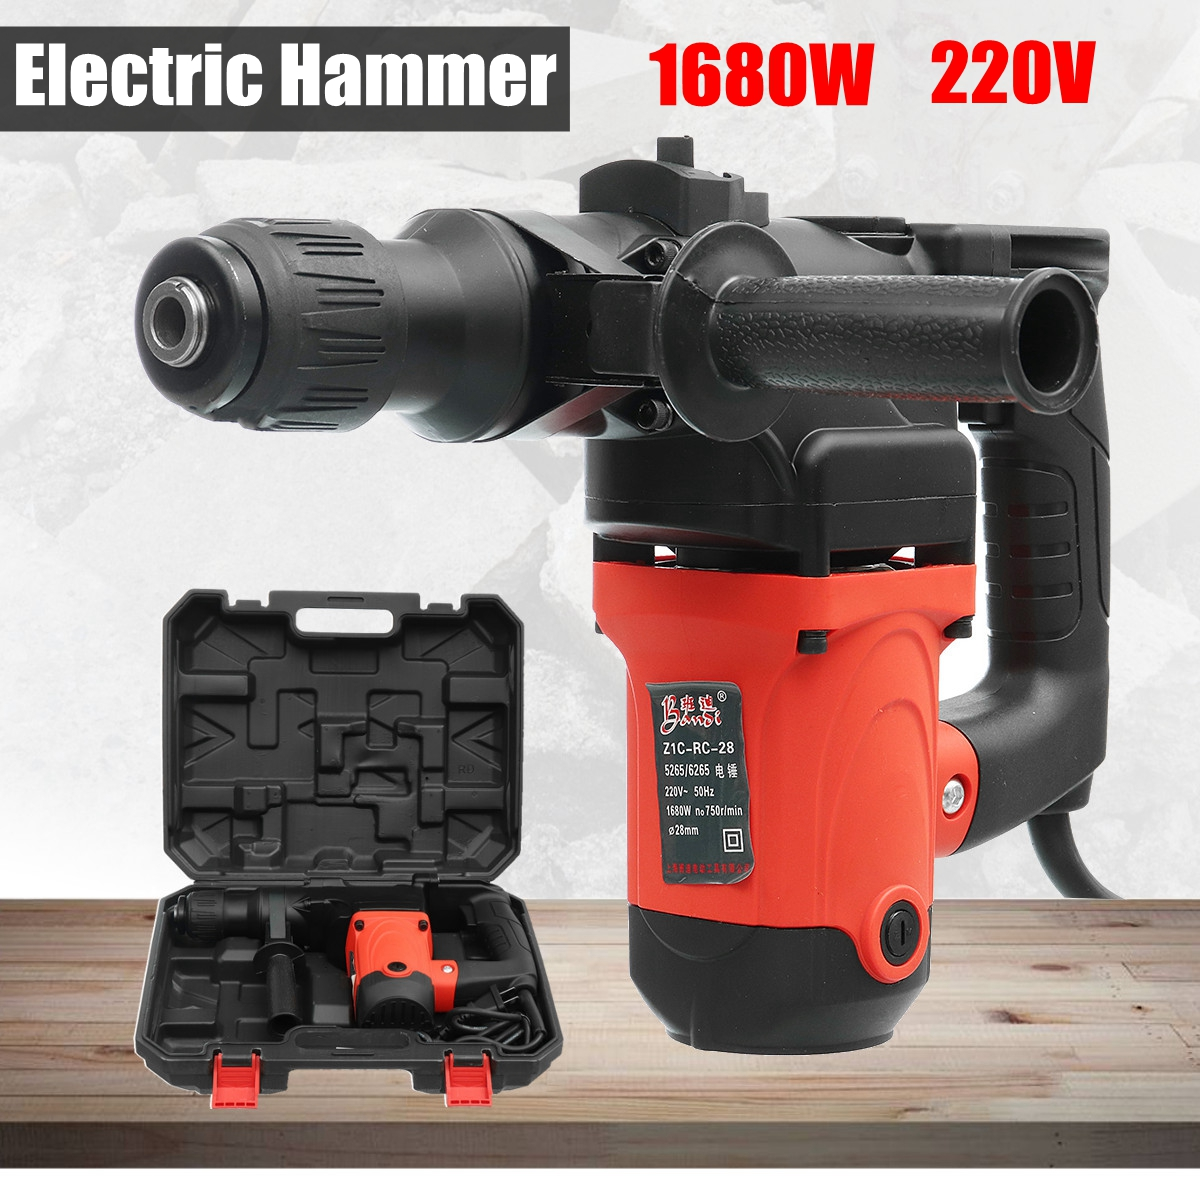 The impact drill hammer multifunctional electric drill electric dual-purpose high power industrial power tools multi purpose impact drill for household use la414413 upholstery drilling wall percussion impact drill set power tools 220v 810w